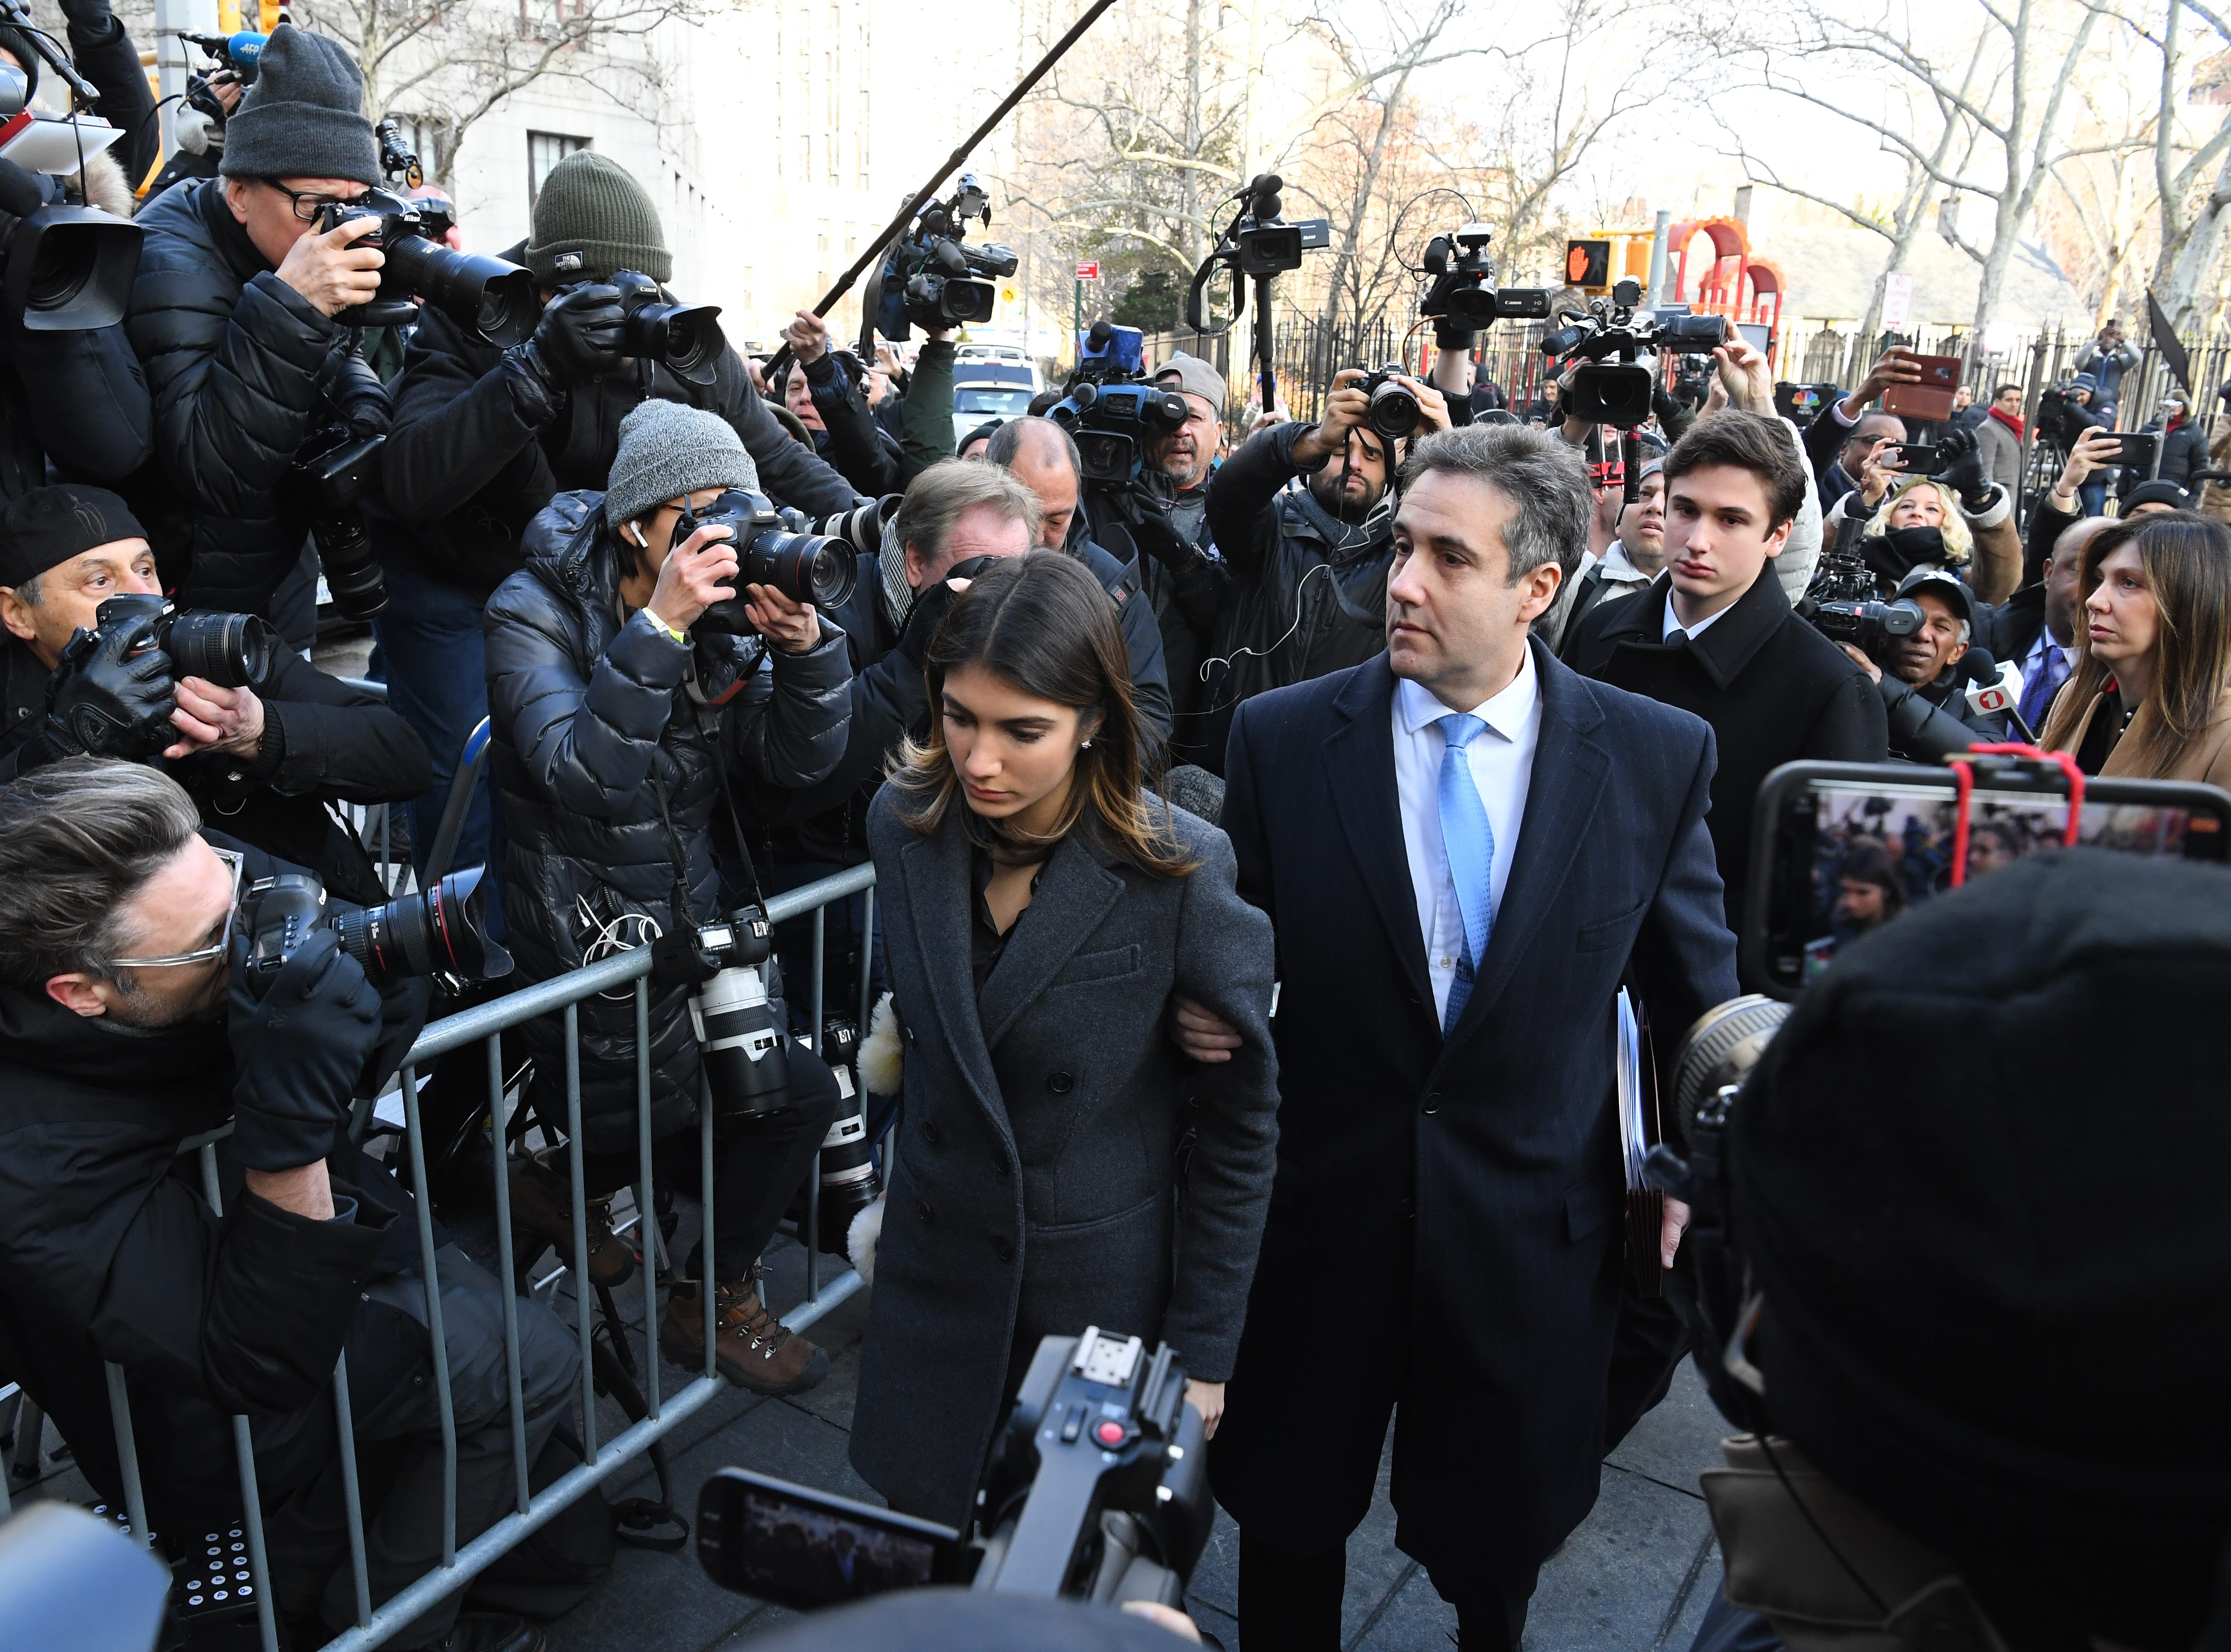 Dec. 12, 2018: Michael Cohen arrives at the Moynahan Federal Courthouse in New York City for sentencing for dodging taxes, lying to Congress and violating campaign finance laws.